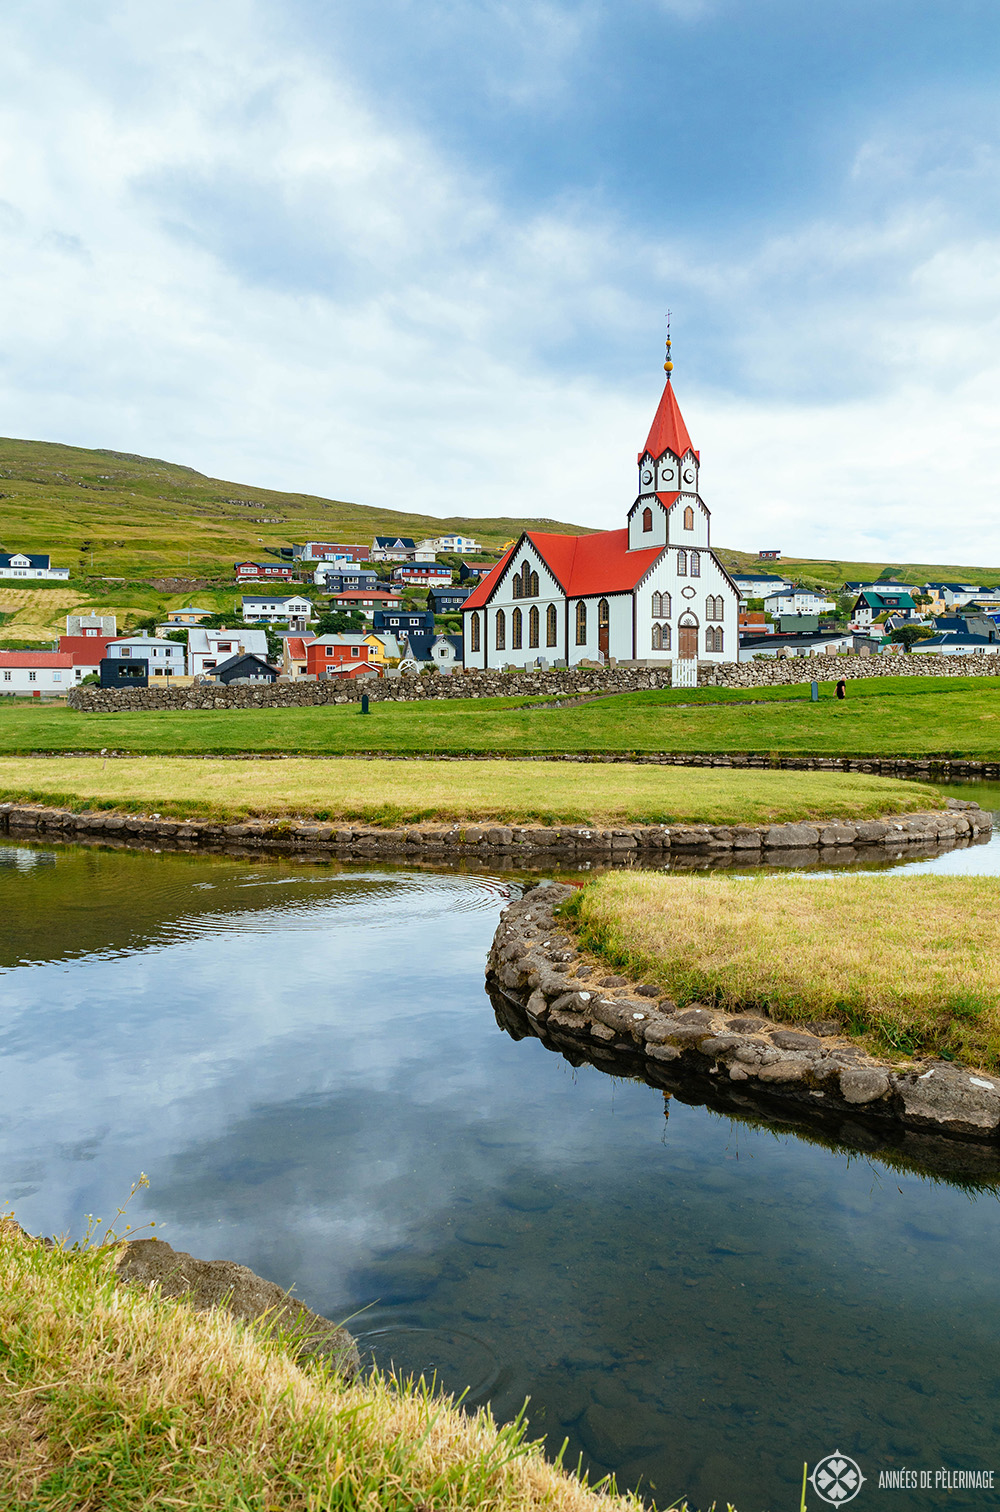 A colorful traditional wooden church in a smalltown in Iceland